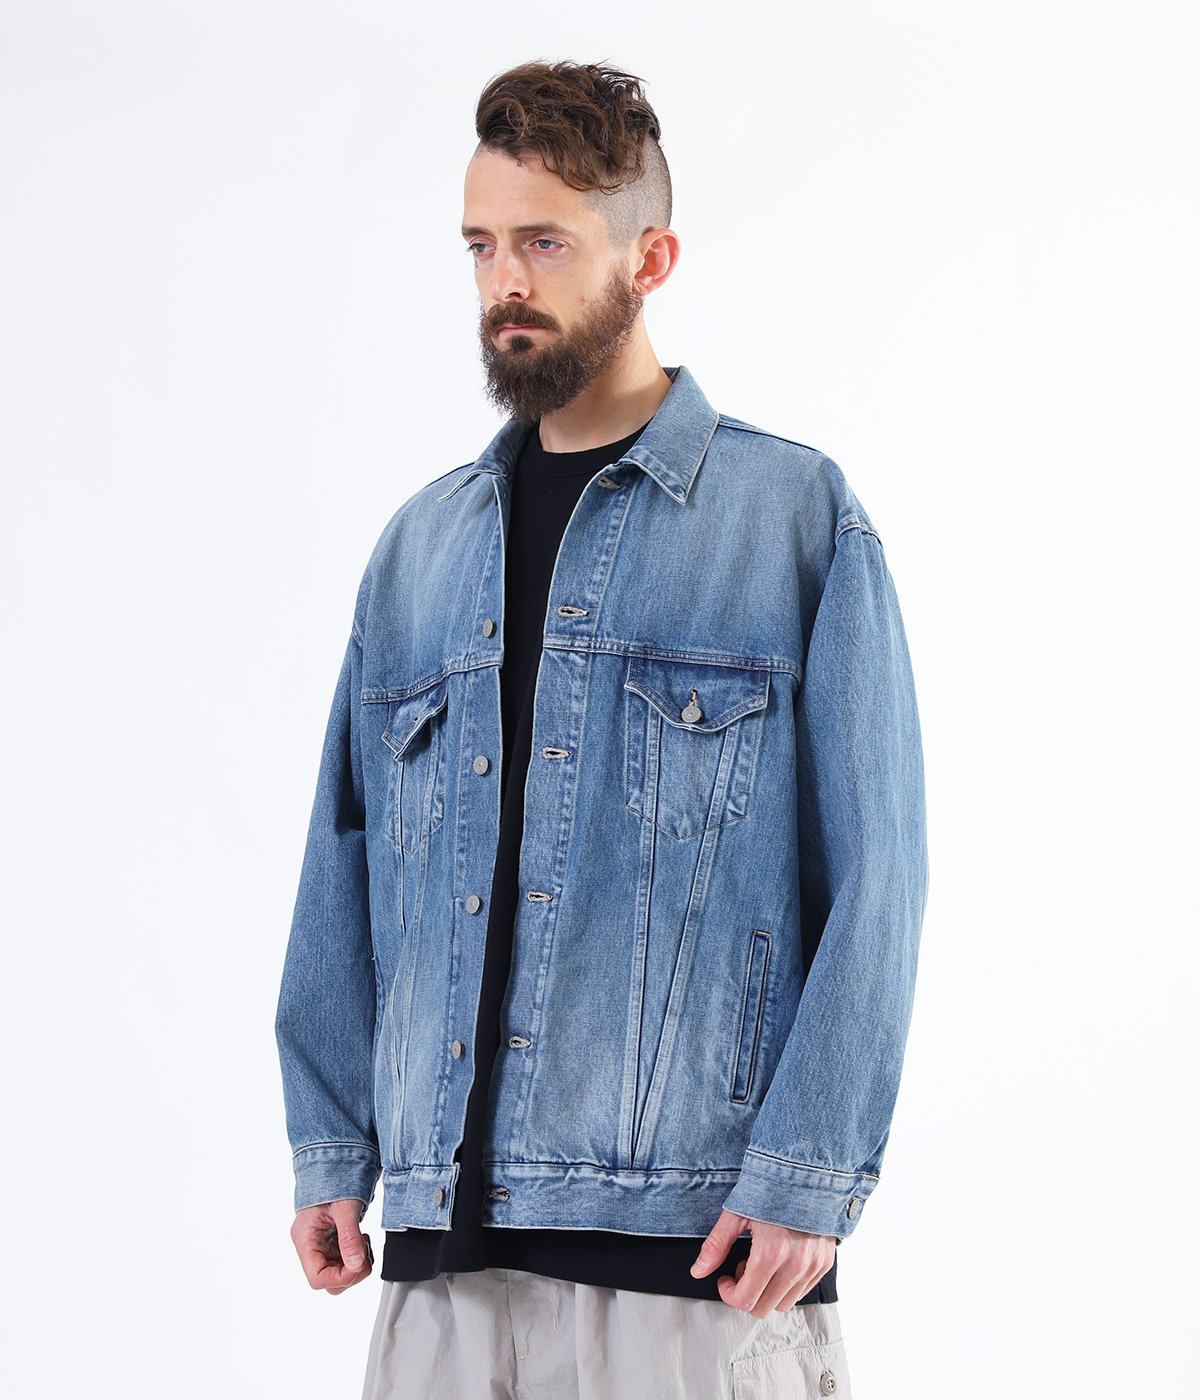 14oz. DENIM TRUCKER JACKET AGED MODEL